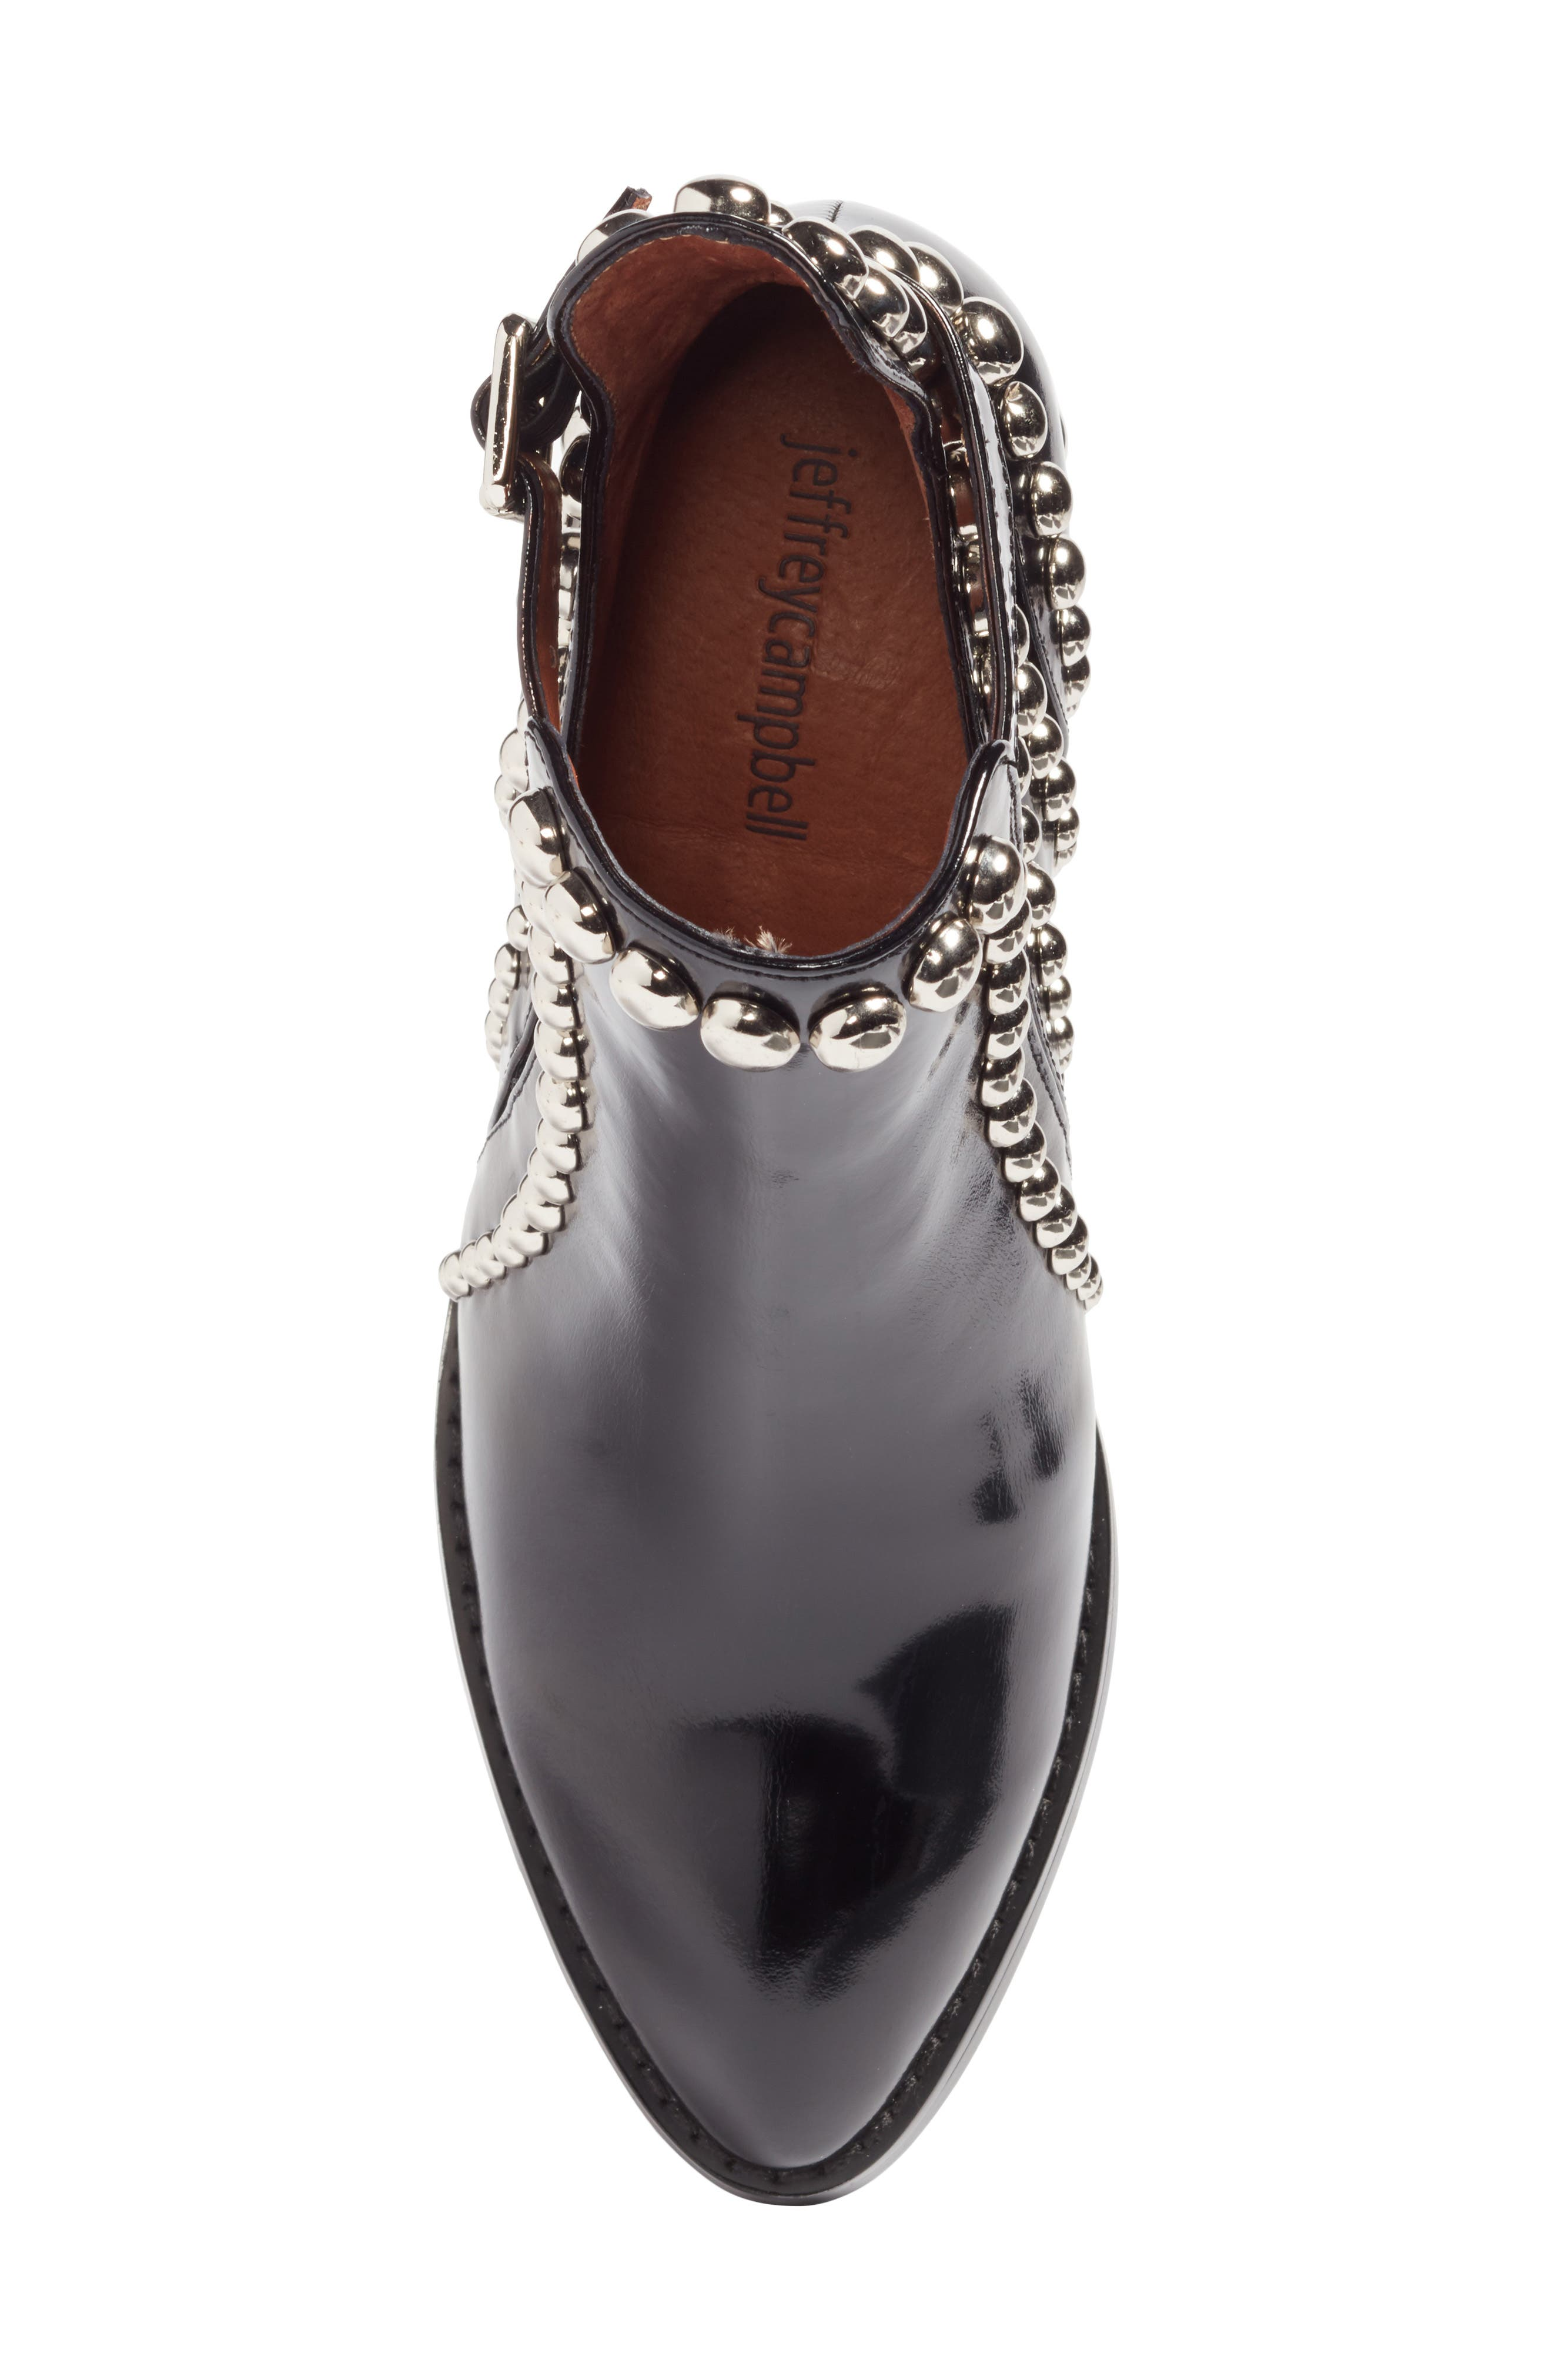 JEFFREY CAMPBELL, Rylance Studded Bootie, Alternate thumbnail 5, color, BLACK BOX SILVER LEATHER